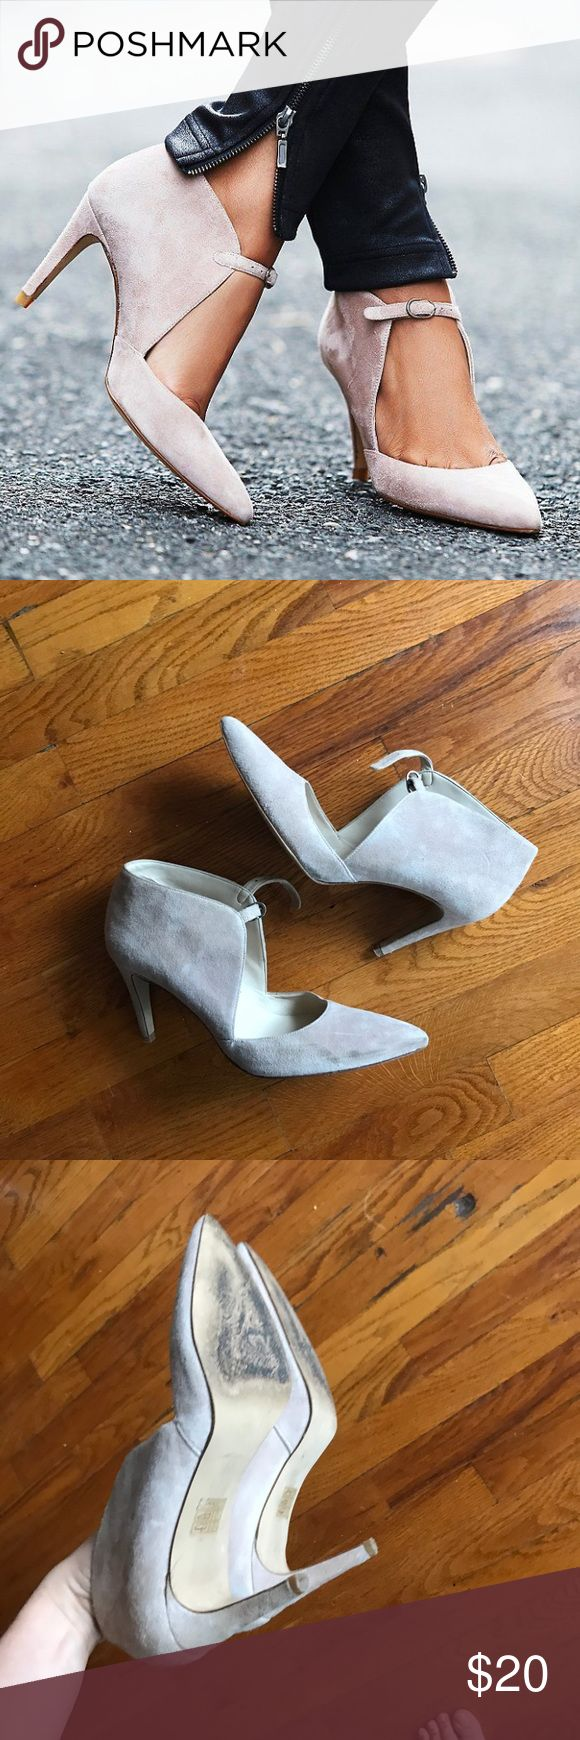 Free People Cerow Heel size 39 in blush Worn 2x only. Great for formal wear, bridesmaids dresses. Color is not showing correctly bc it's overcast today- a bit pinker in person. 3.5 in heel, blush colored suede, pointy toe with ankle strap. size 39 but fits like an 8. Free People Shoes Heels